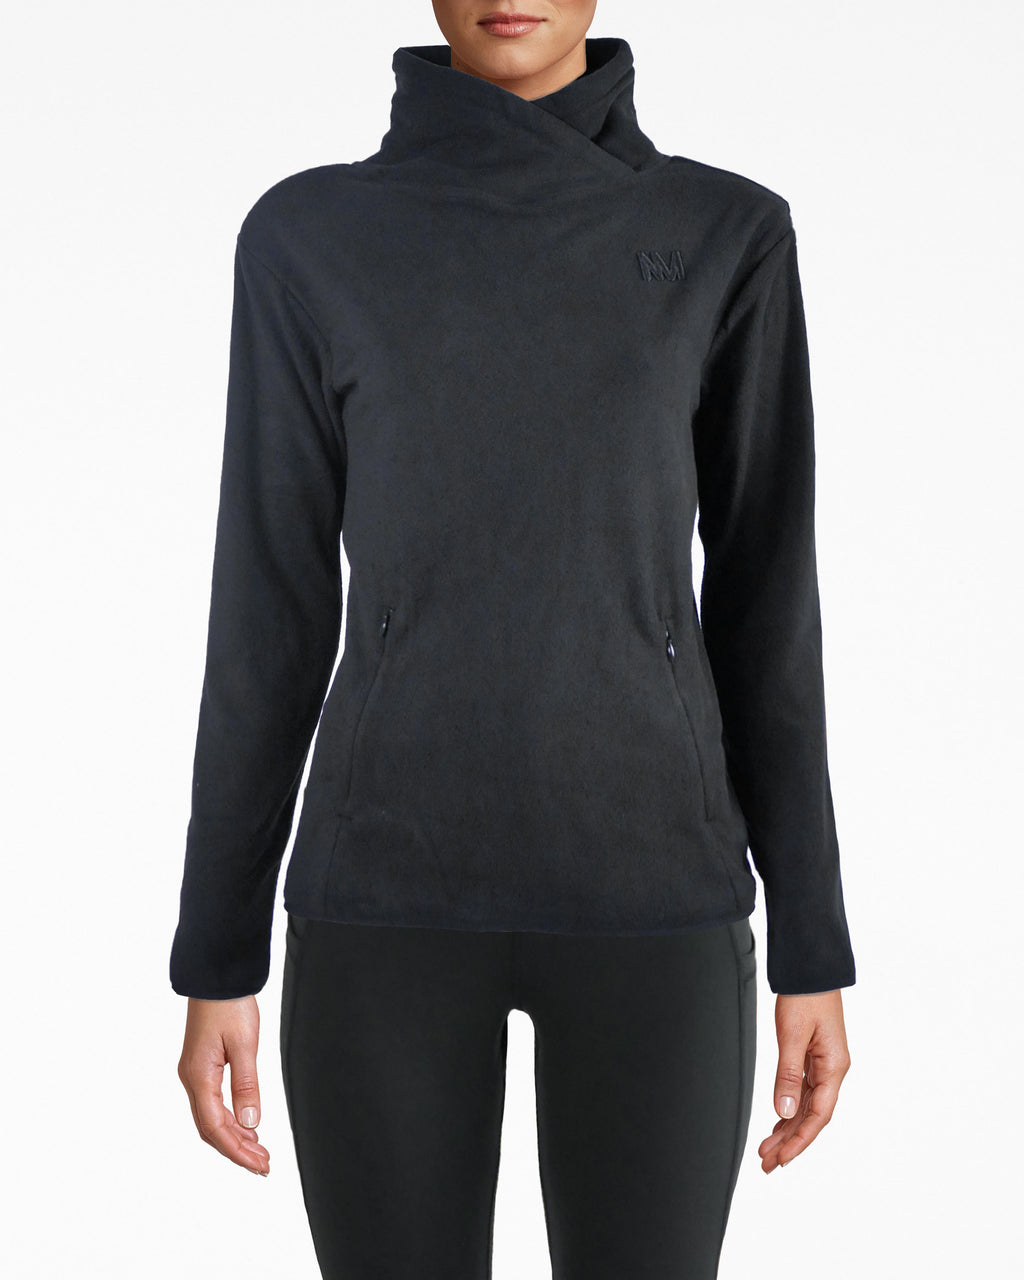 N8ZP008 - Fleece Pop Over - activewear - activewear tops - Keep it cozy. Our NM logo is subtly featured on the breast and back of this fleece wrapped pop over jacket. The fit is super comfortable and falls below the waist. Two pockets with exposed zippers for closure.